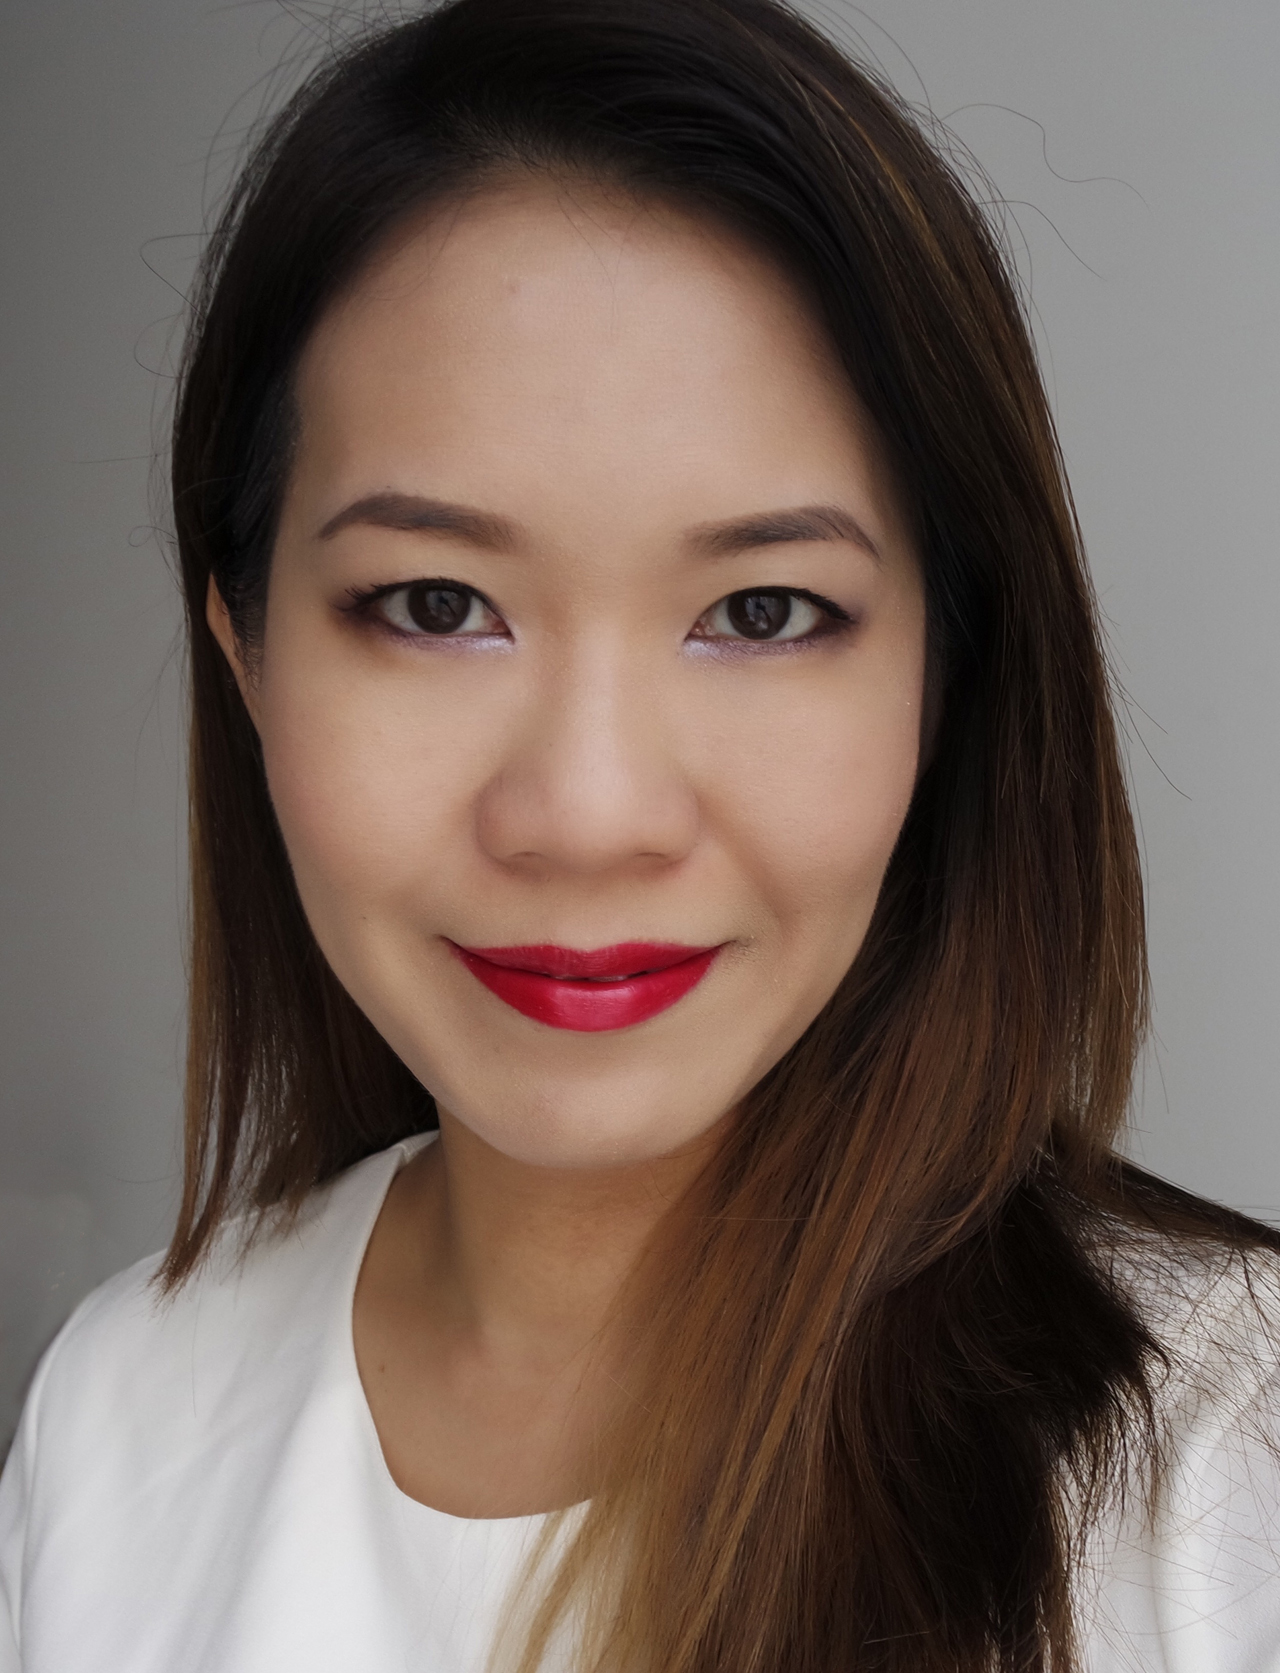 Tom Ford Lip Contour Duo - Secret Escort MOTD